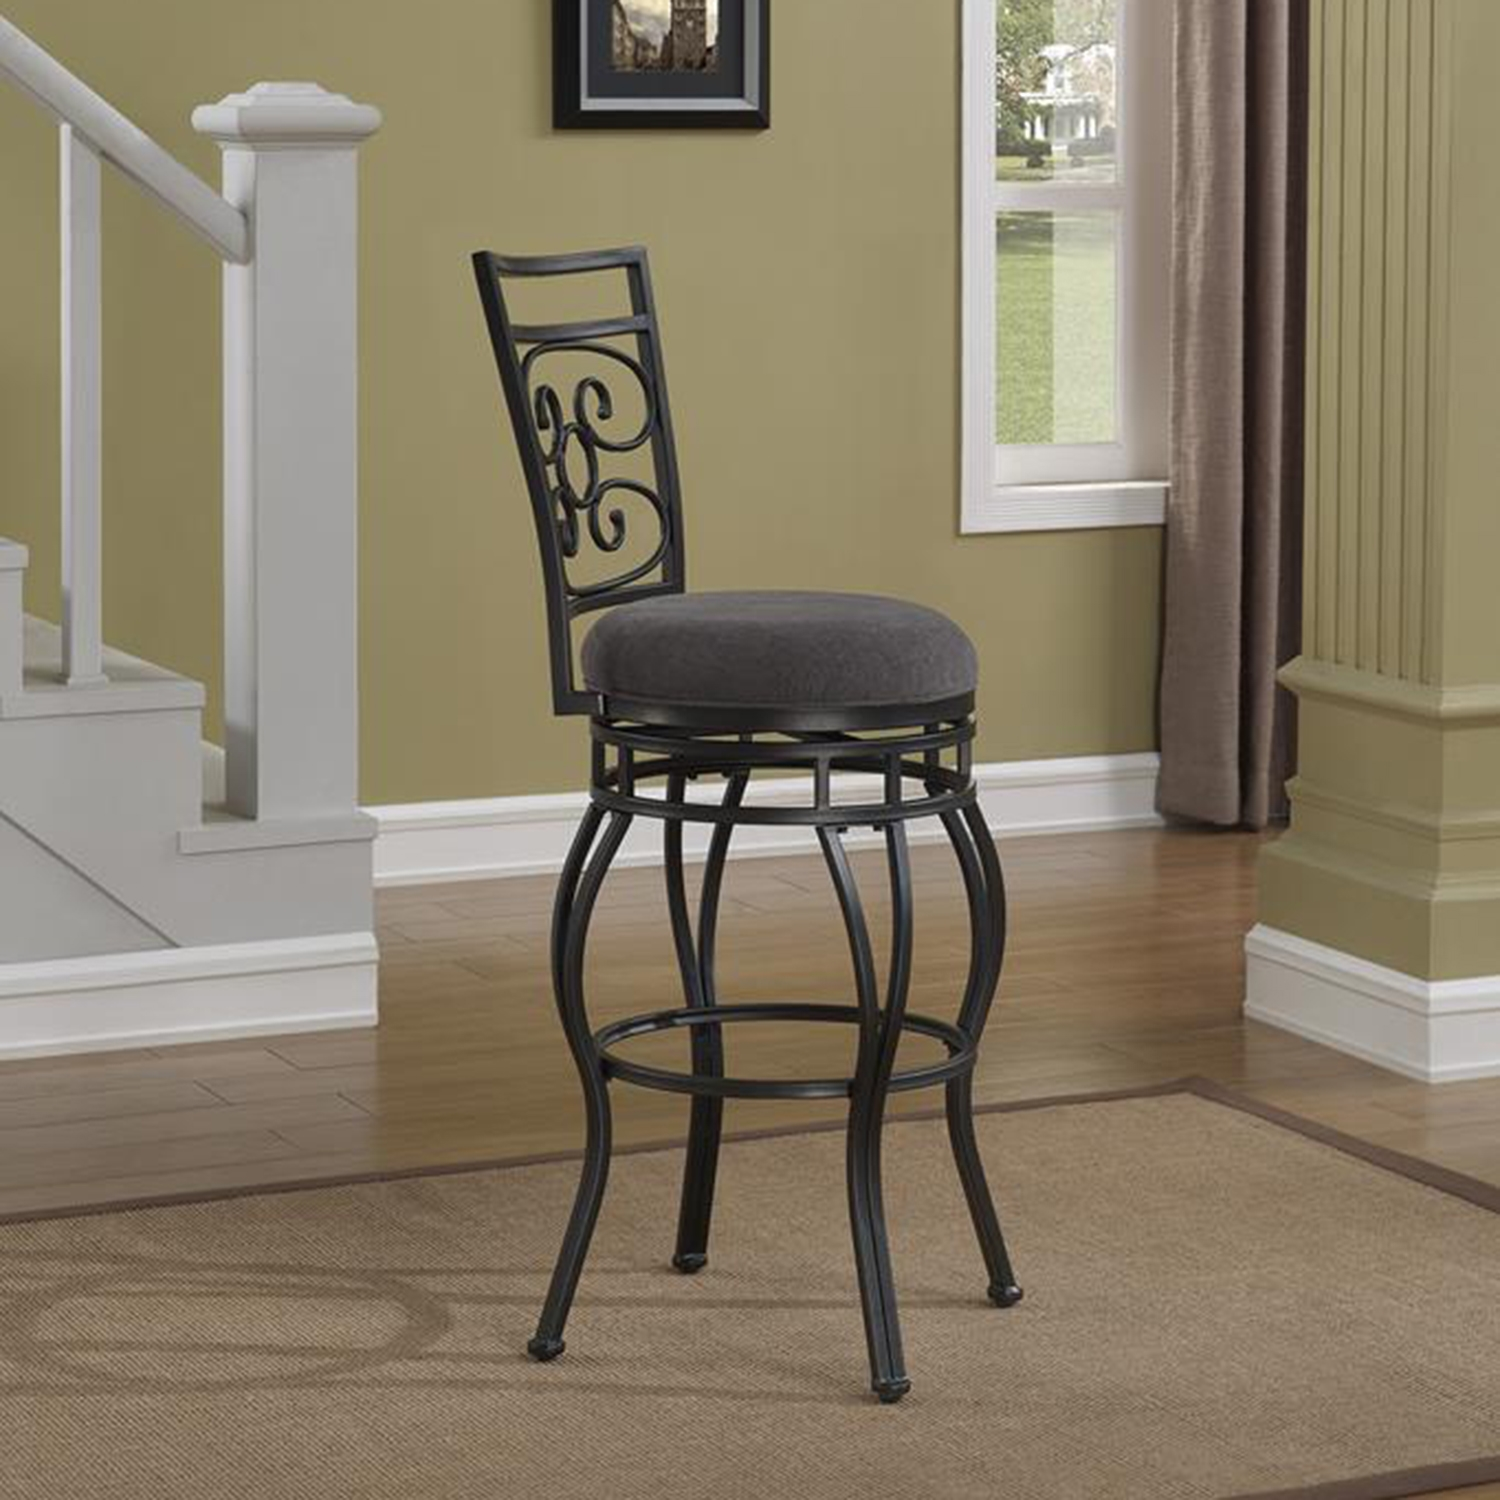 Albany Swivel Counter Stool - Charcoal Gray - AW-B1-151-26F